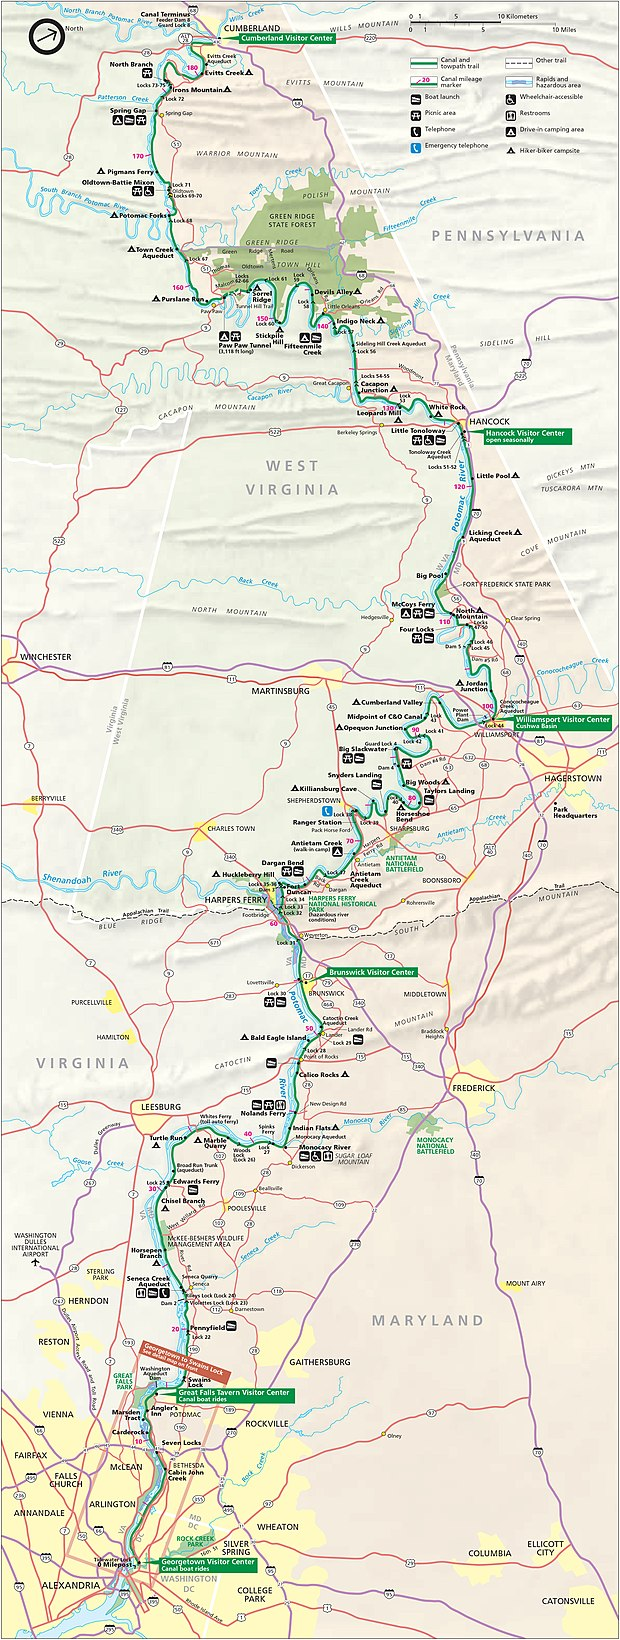 Chesapeake And Ohio Canal National Historical Park Wikiwand - Map of usc columbia